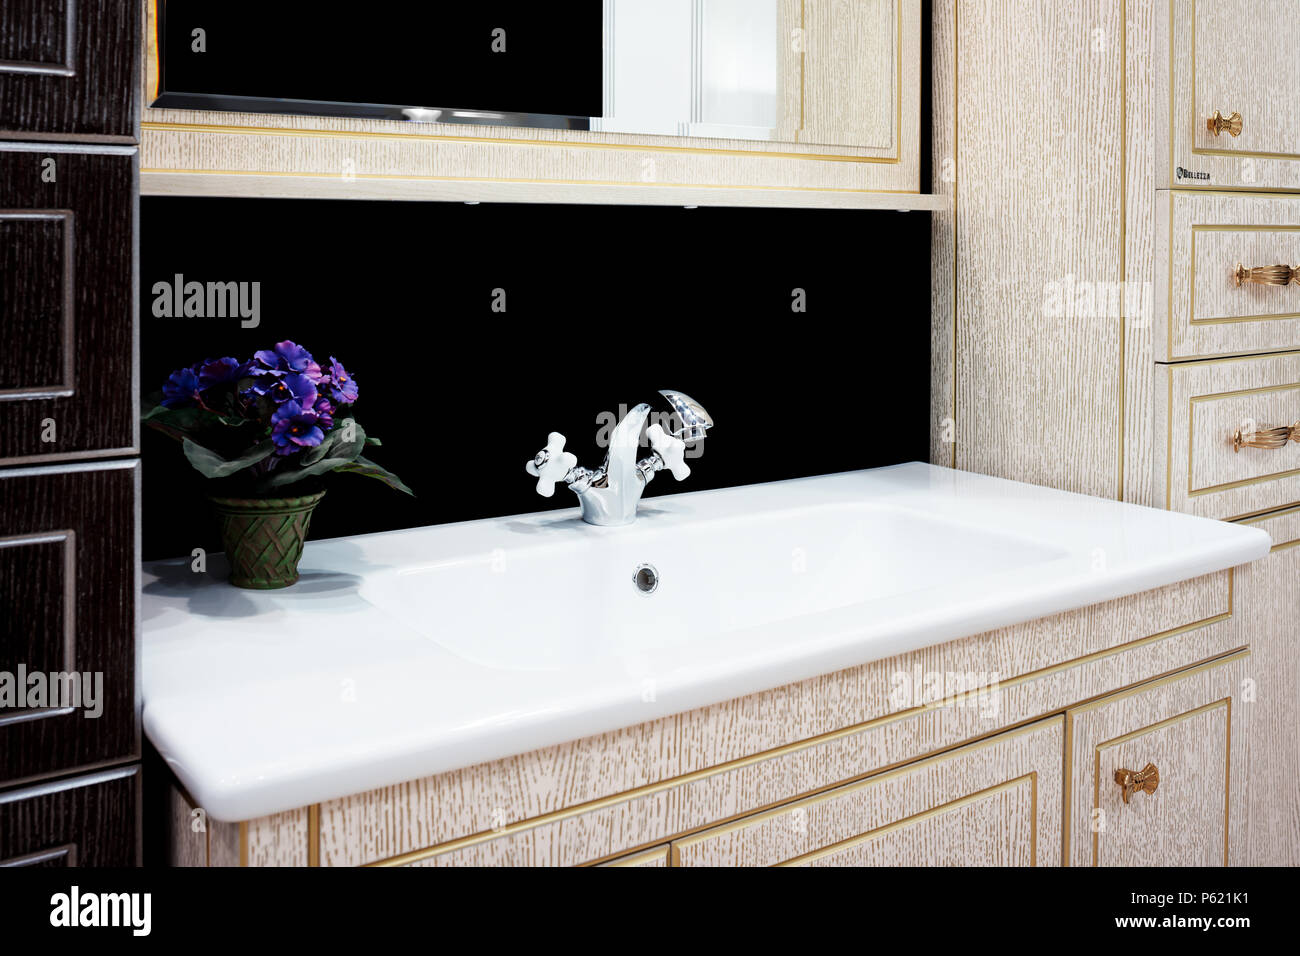 Bathroom interior with sink and retro style faucet Stock Photo ...